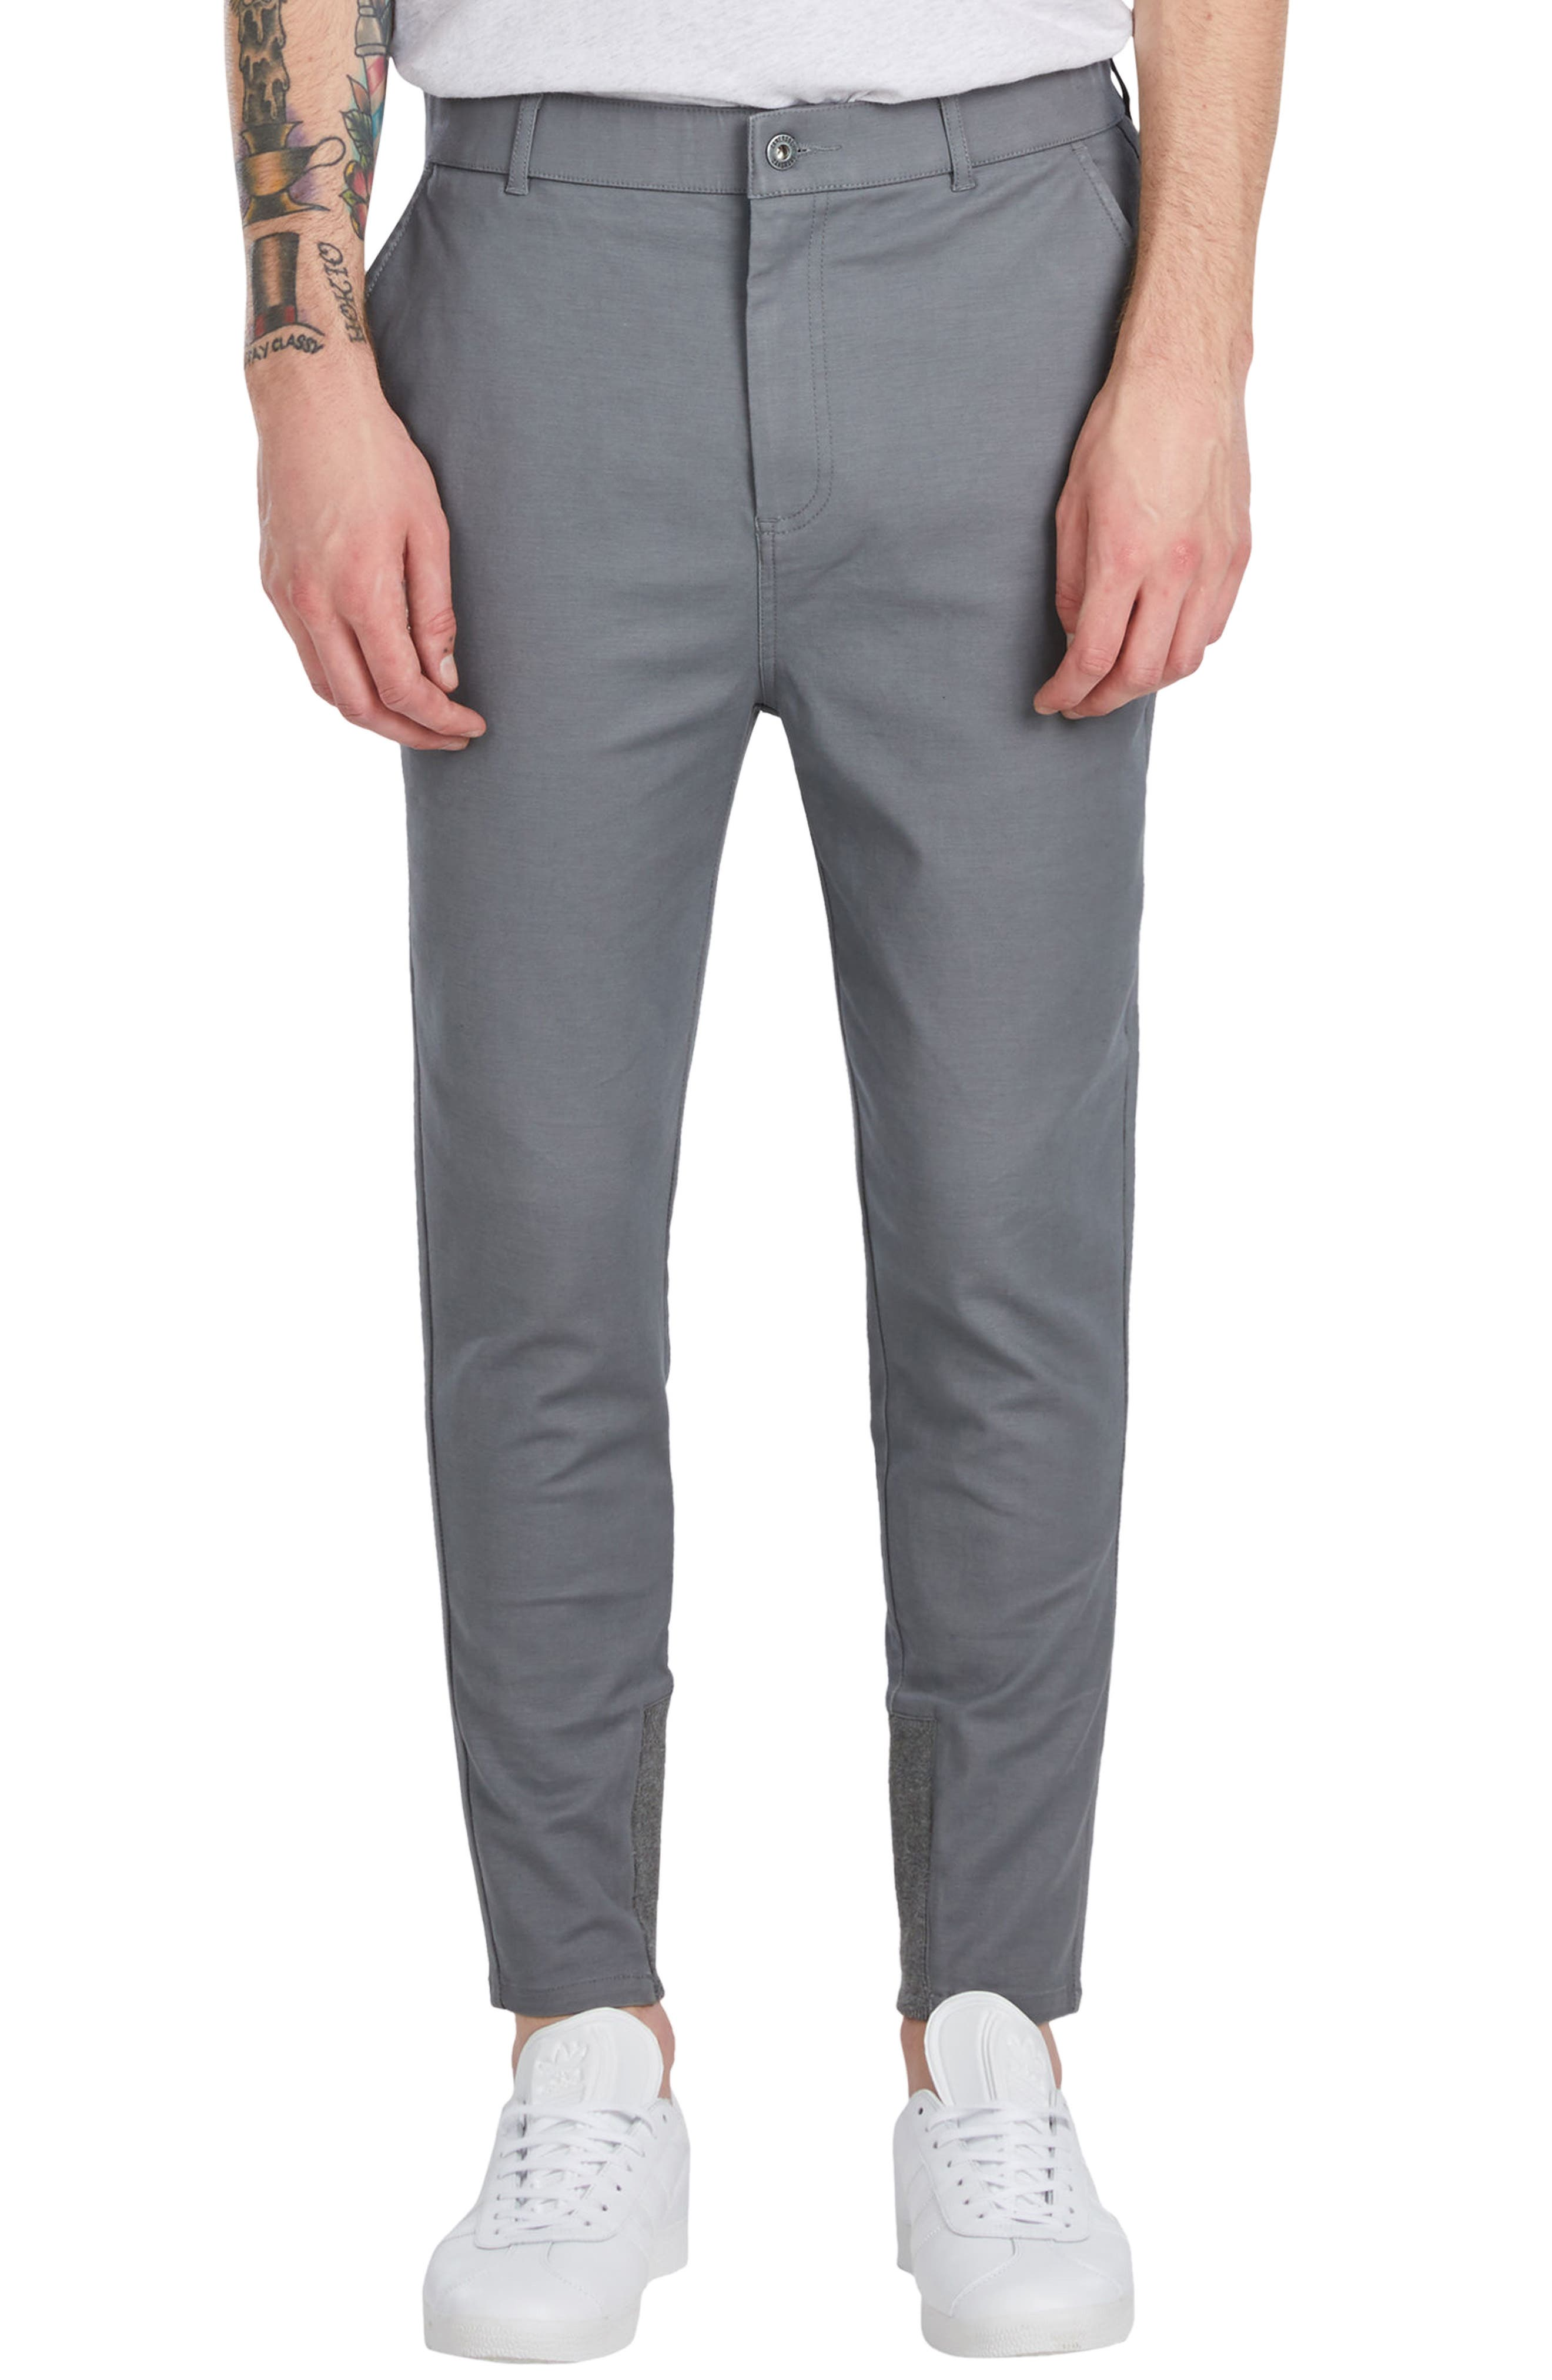 'Sharpshot' Slouchy Skinny Fit Chinos,                         Main,                         color, 031